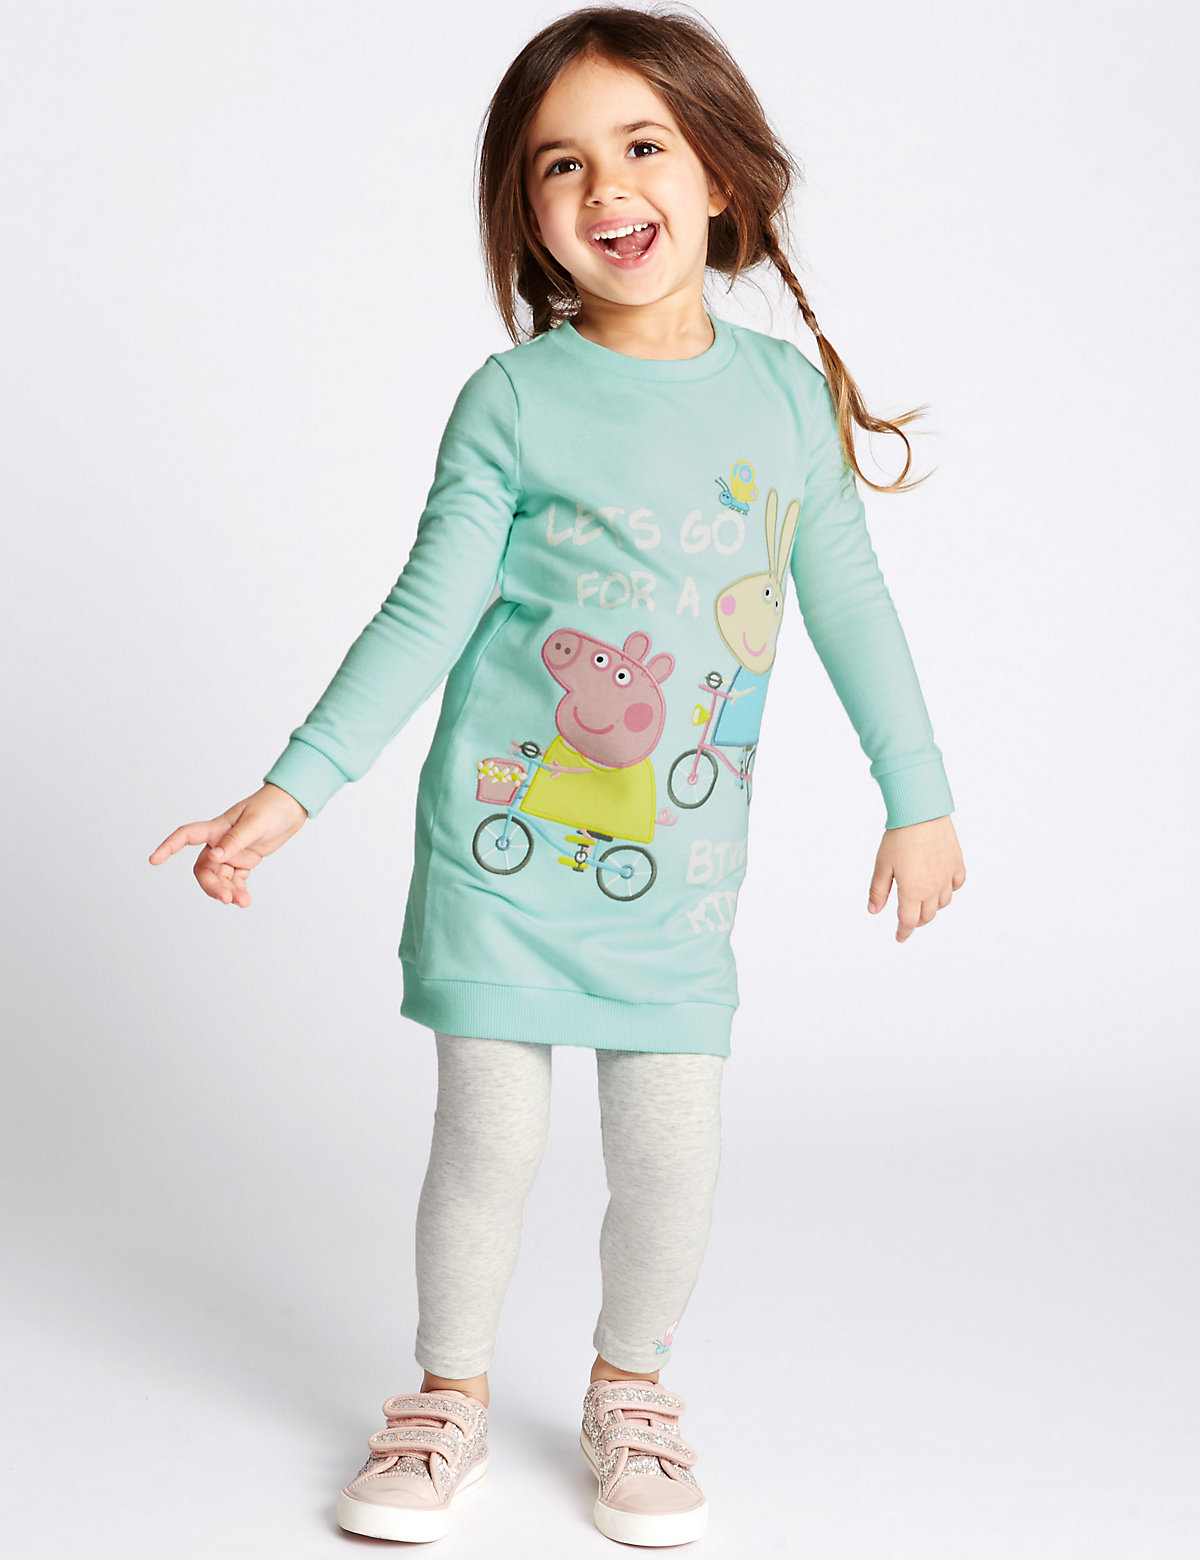 Peppa Pig Top & Leggings Outfit (15 Years)